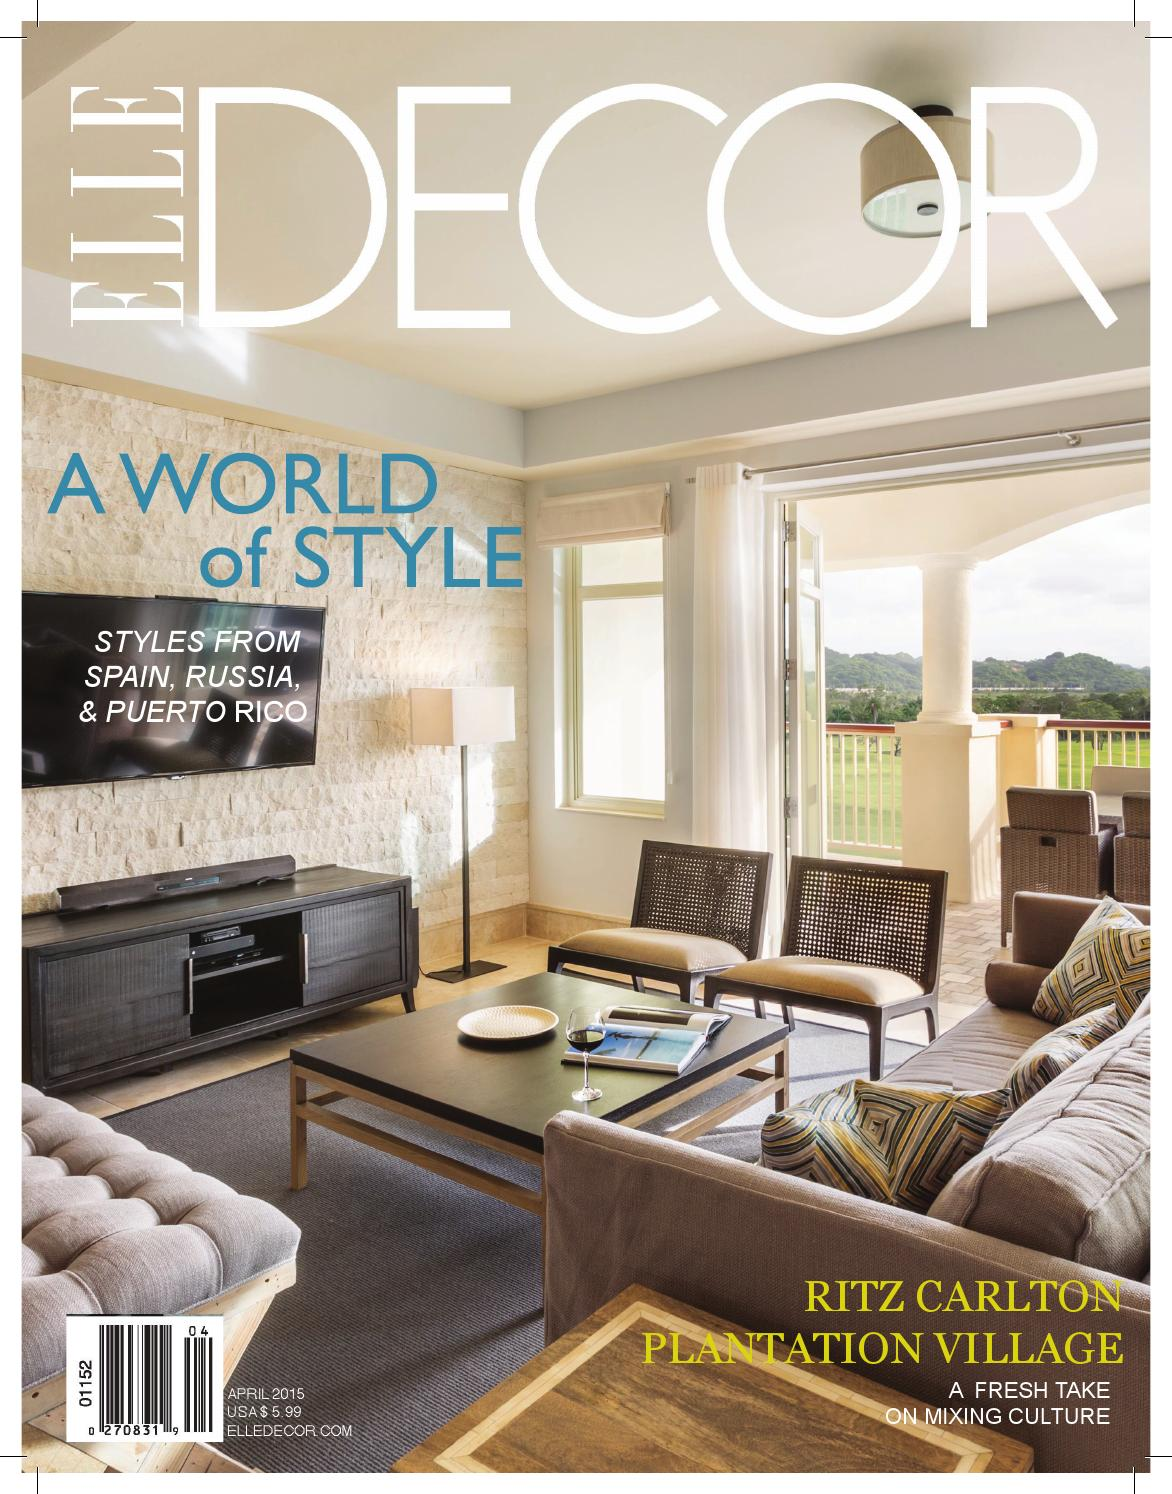 Elle decor puerto rico project by madi stewart issuu for Acanthus decoration puerto rico